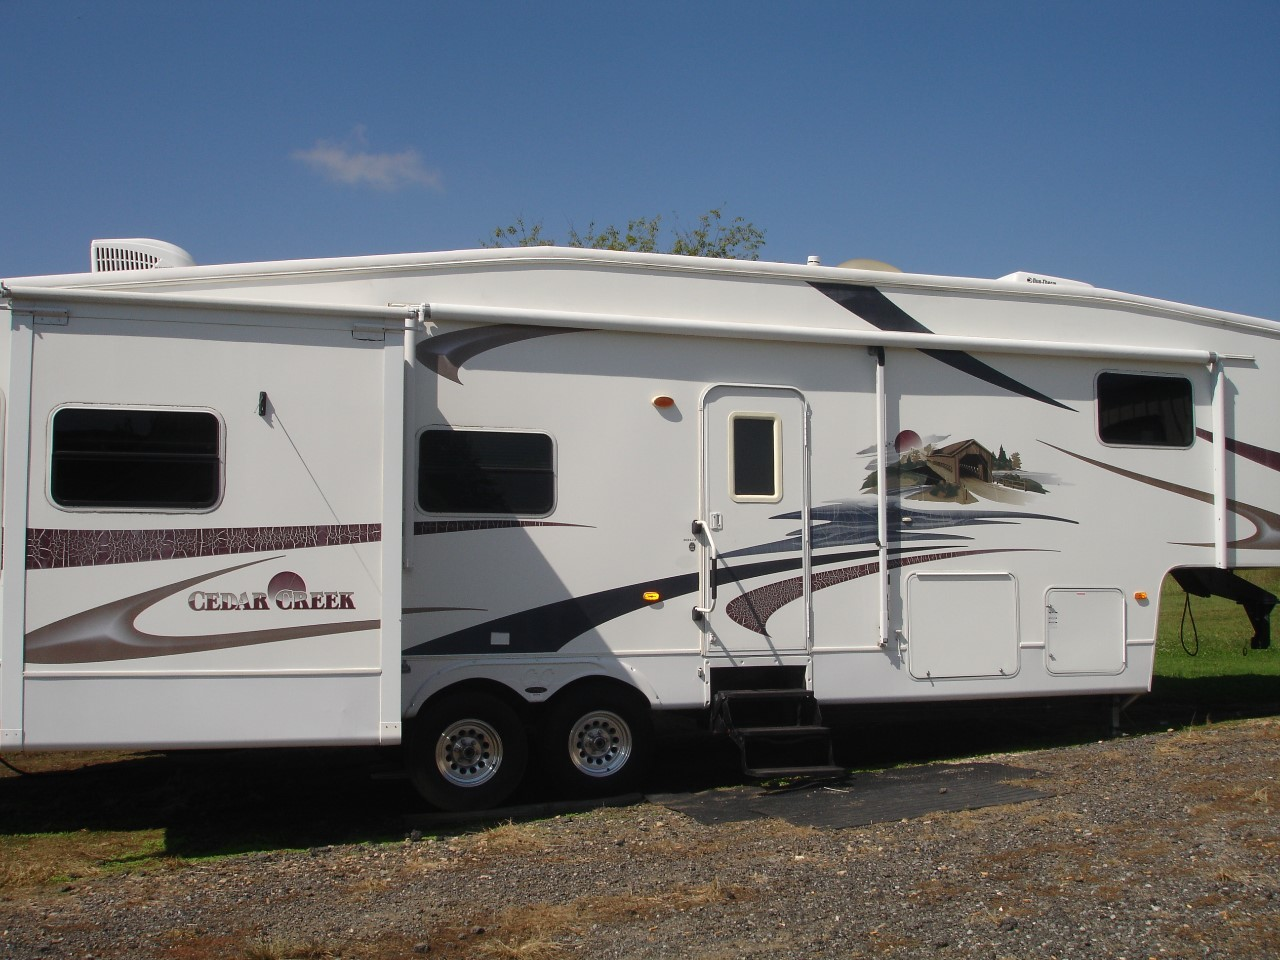 Forest river fifth wheel for sale forest river fifth wheel rvs rvtrader com